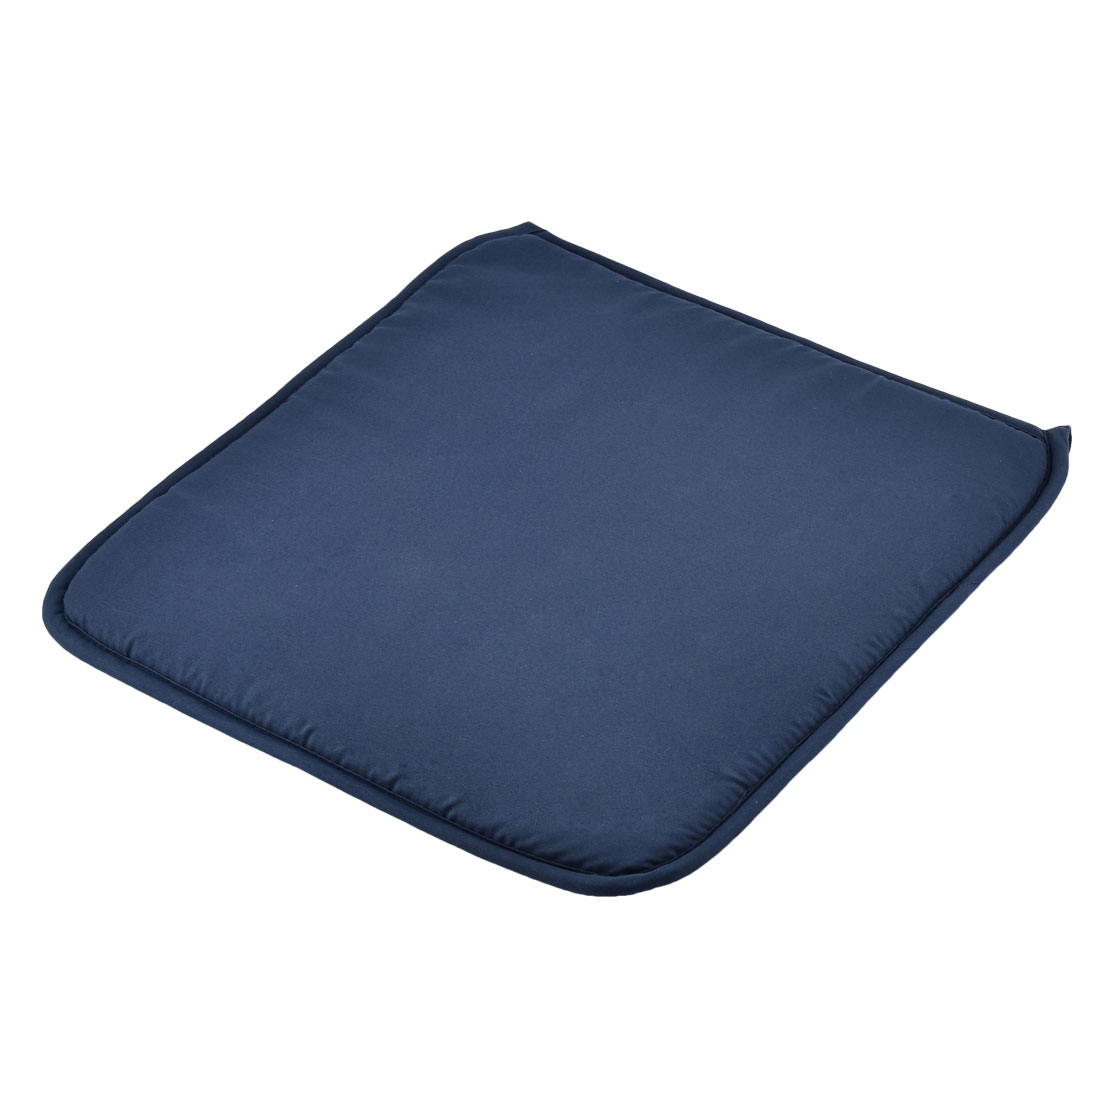 Home Office Sponge Solid Anti Slip Seat Chair Cushion Pad Cover Navy Blue 39 x 39cm